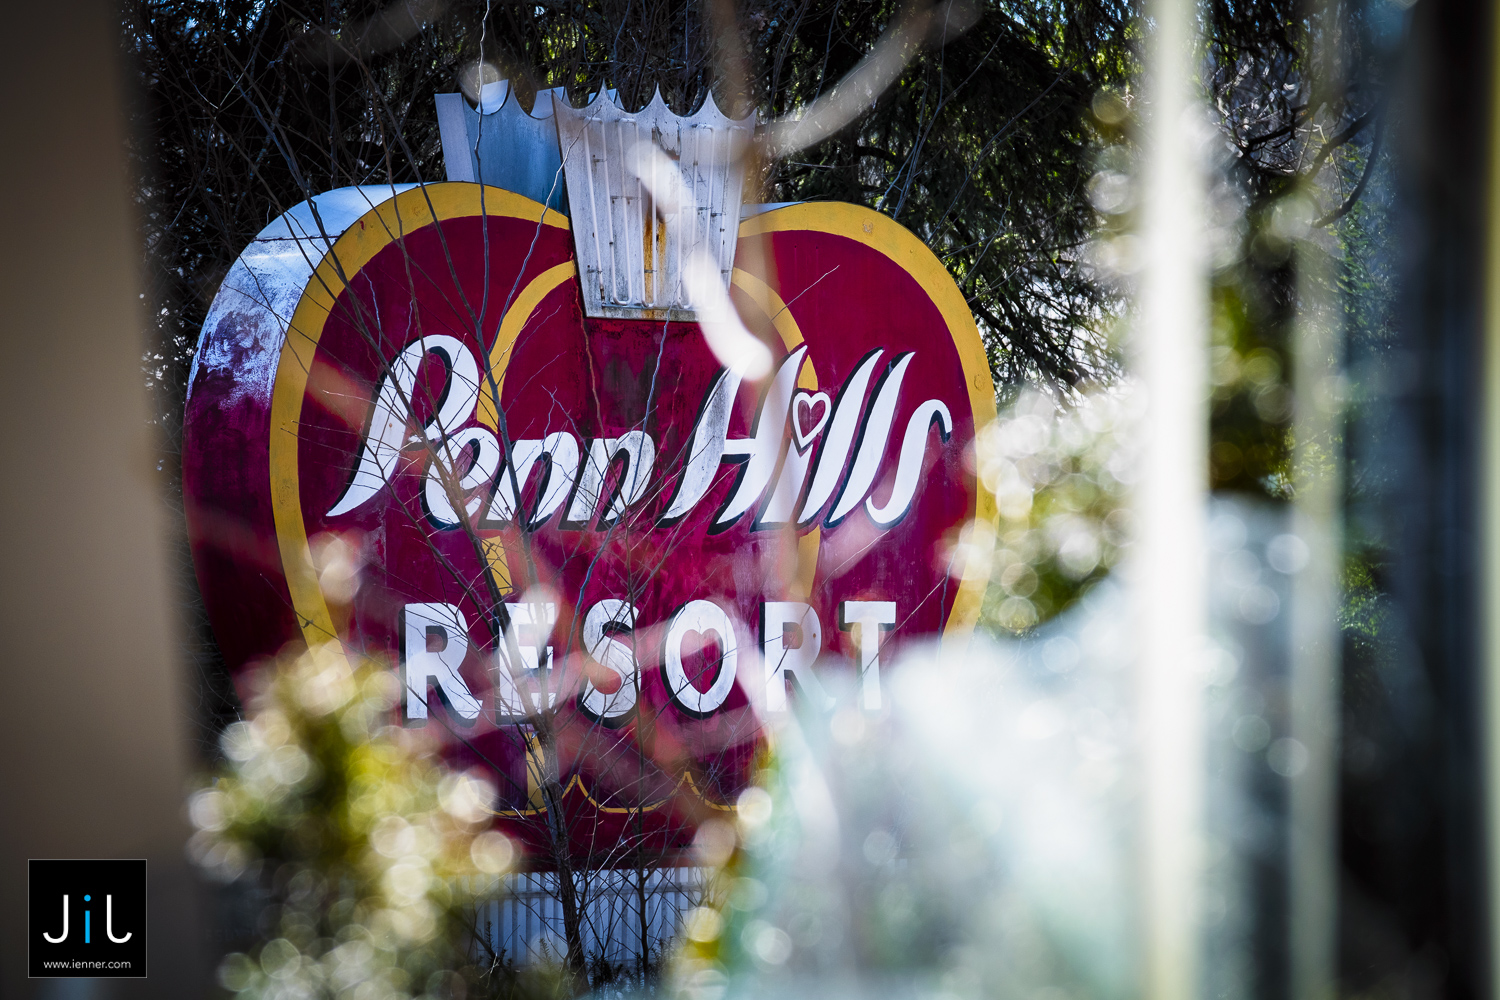 Penn Hills Resort_PA_02-2017-371-Edit.jpg